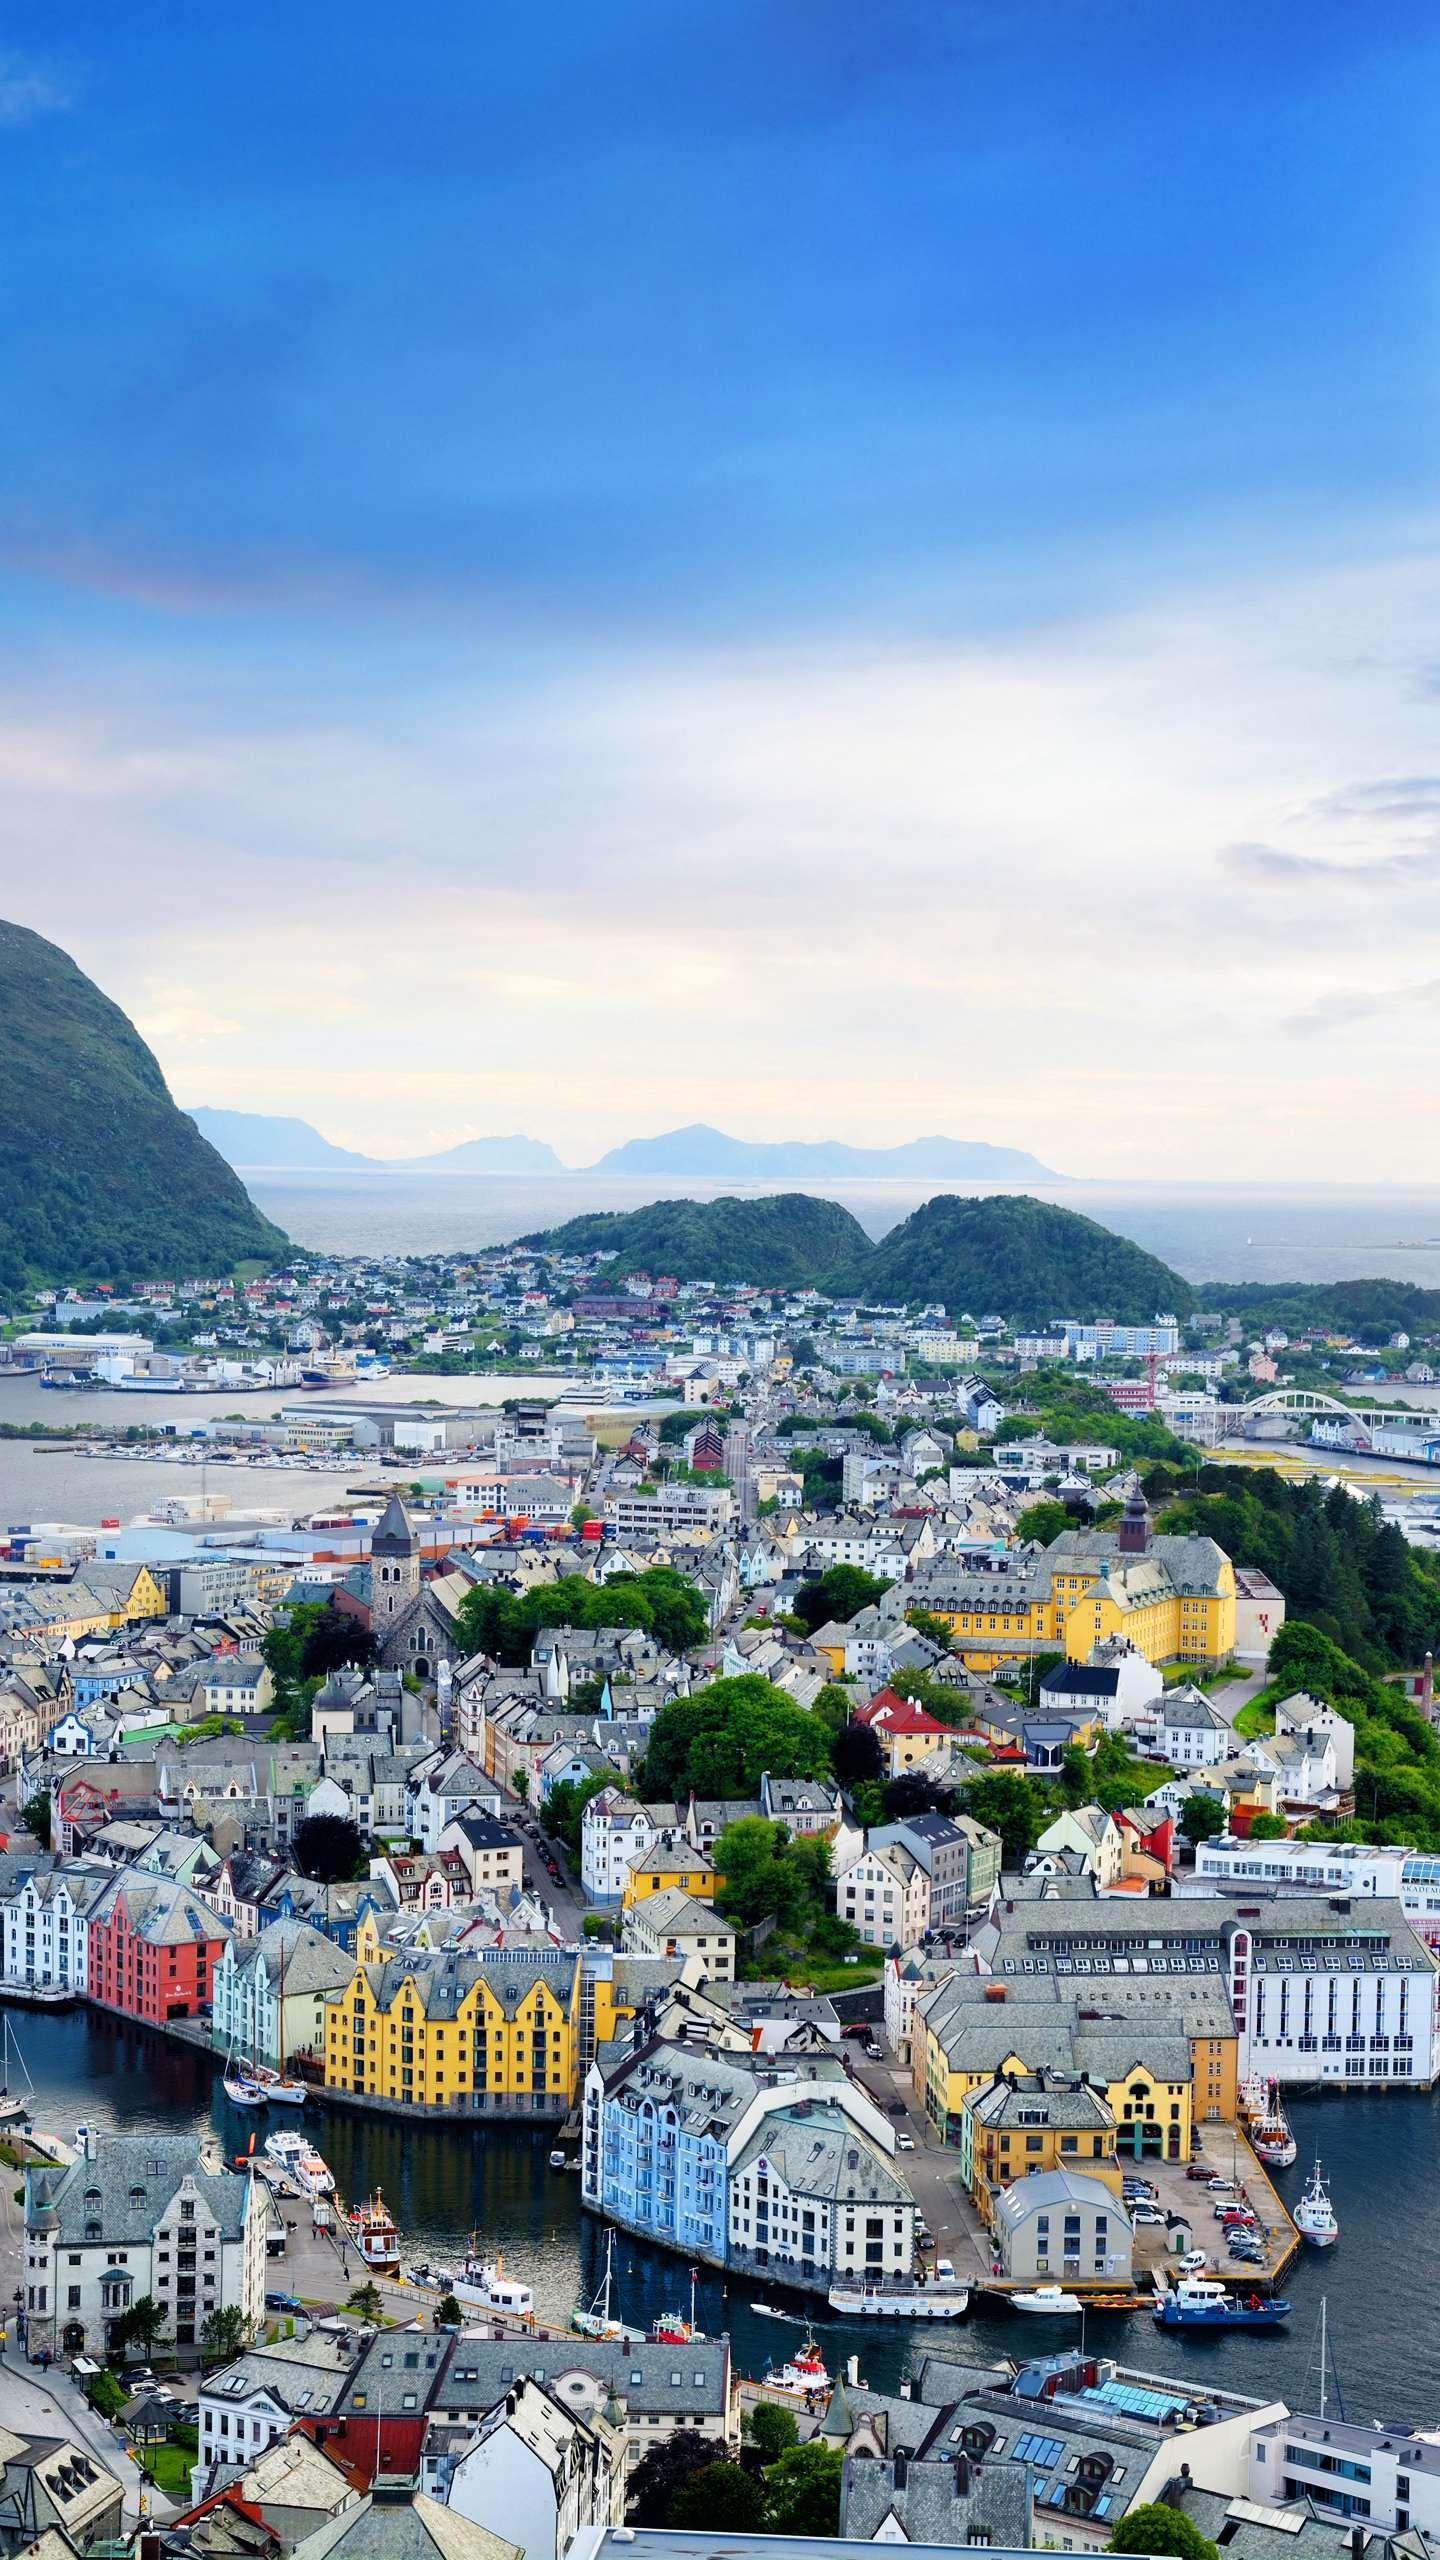 Norway - Ålesund. The Art Nouveau architecture, the natural landscape surrounded by the fjord, is the hallmark of Ålesund.